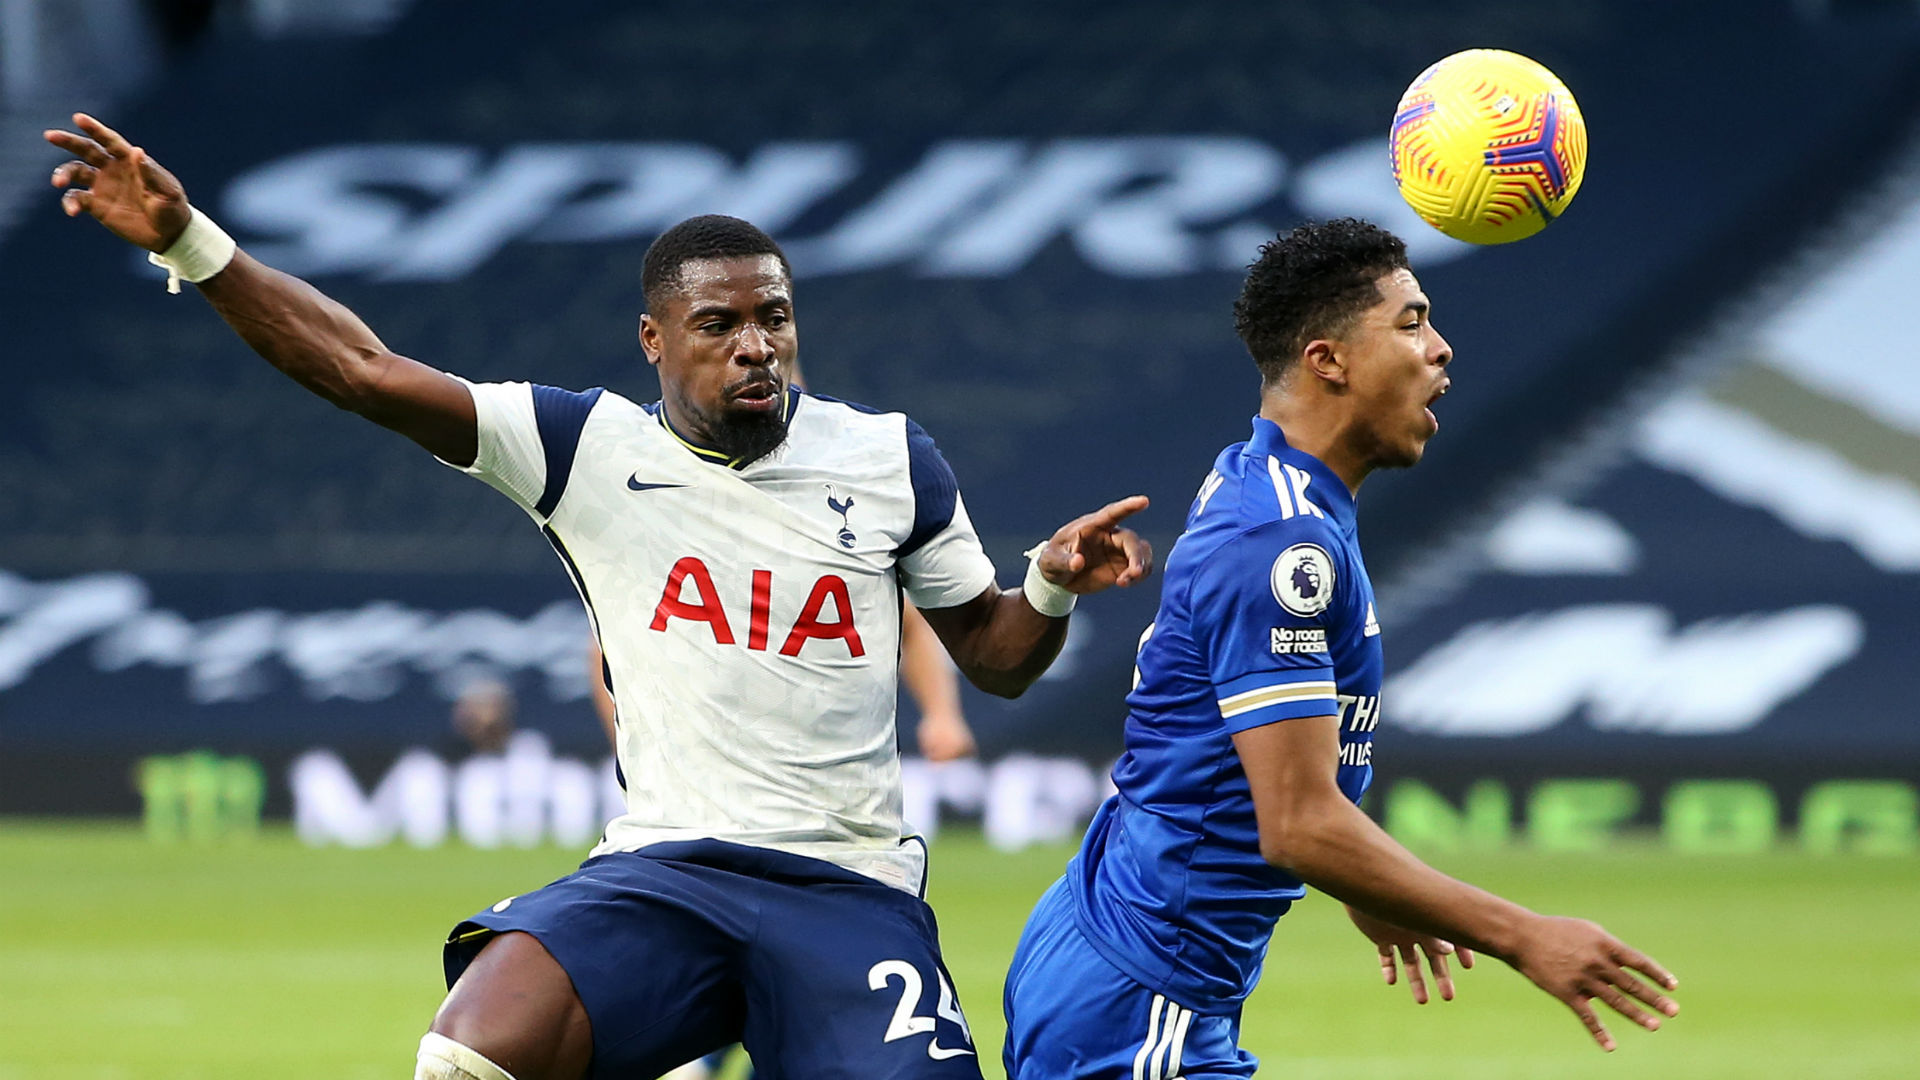 I can't blame players for making mistakes - Mourinho shies away from Aurier criticism